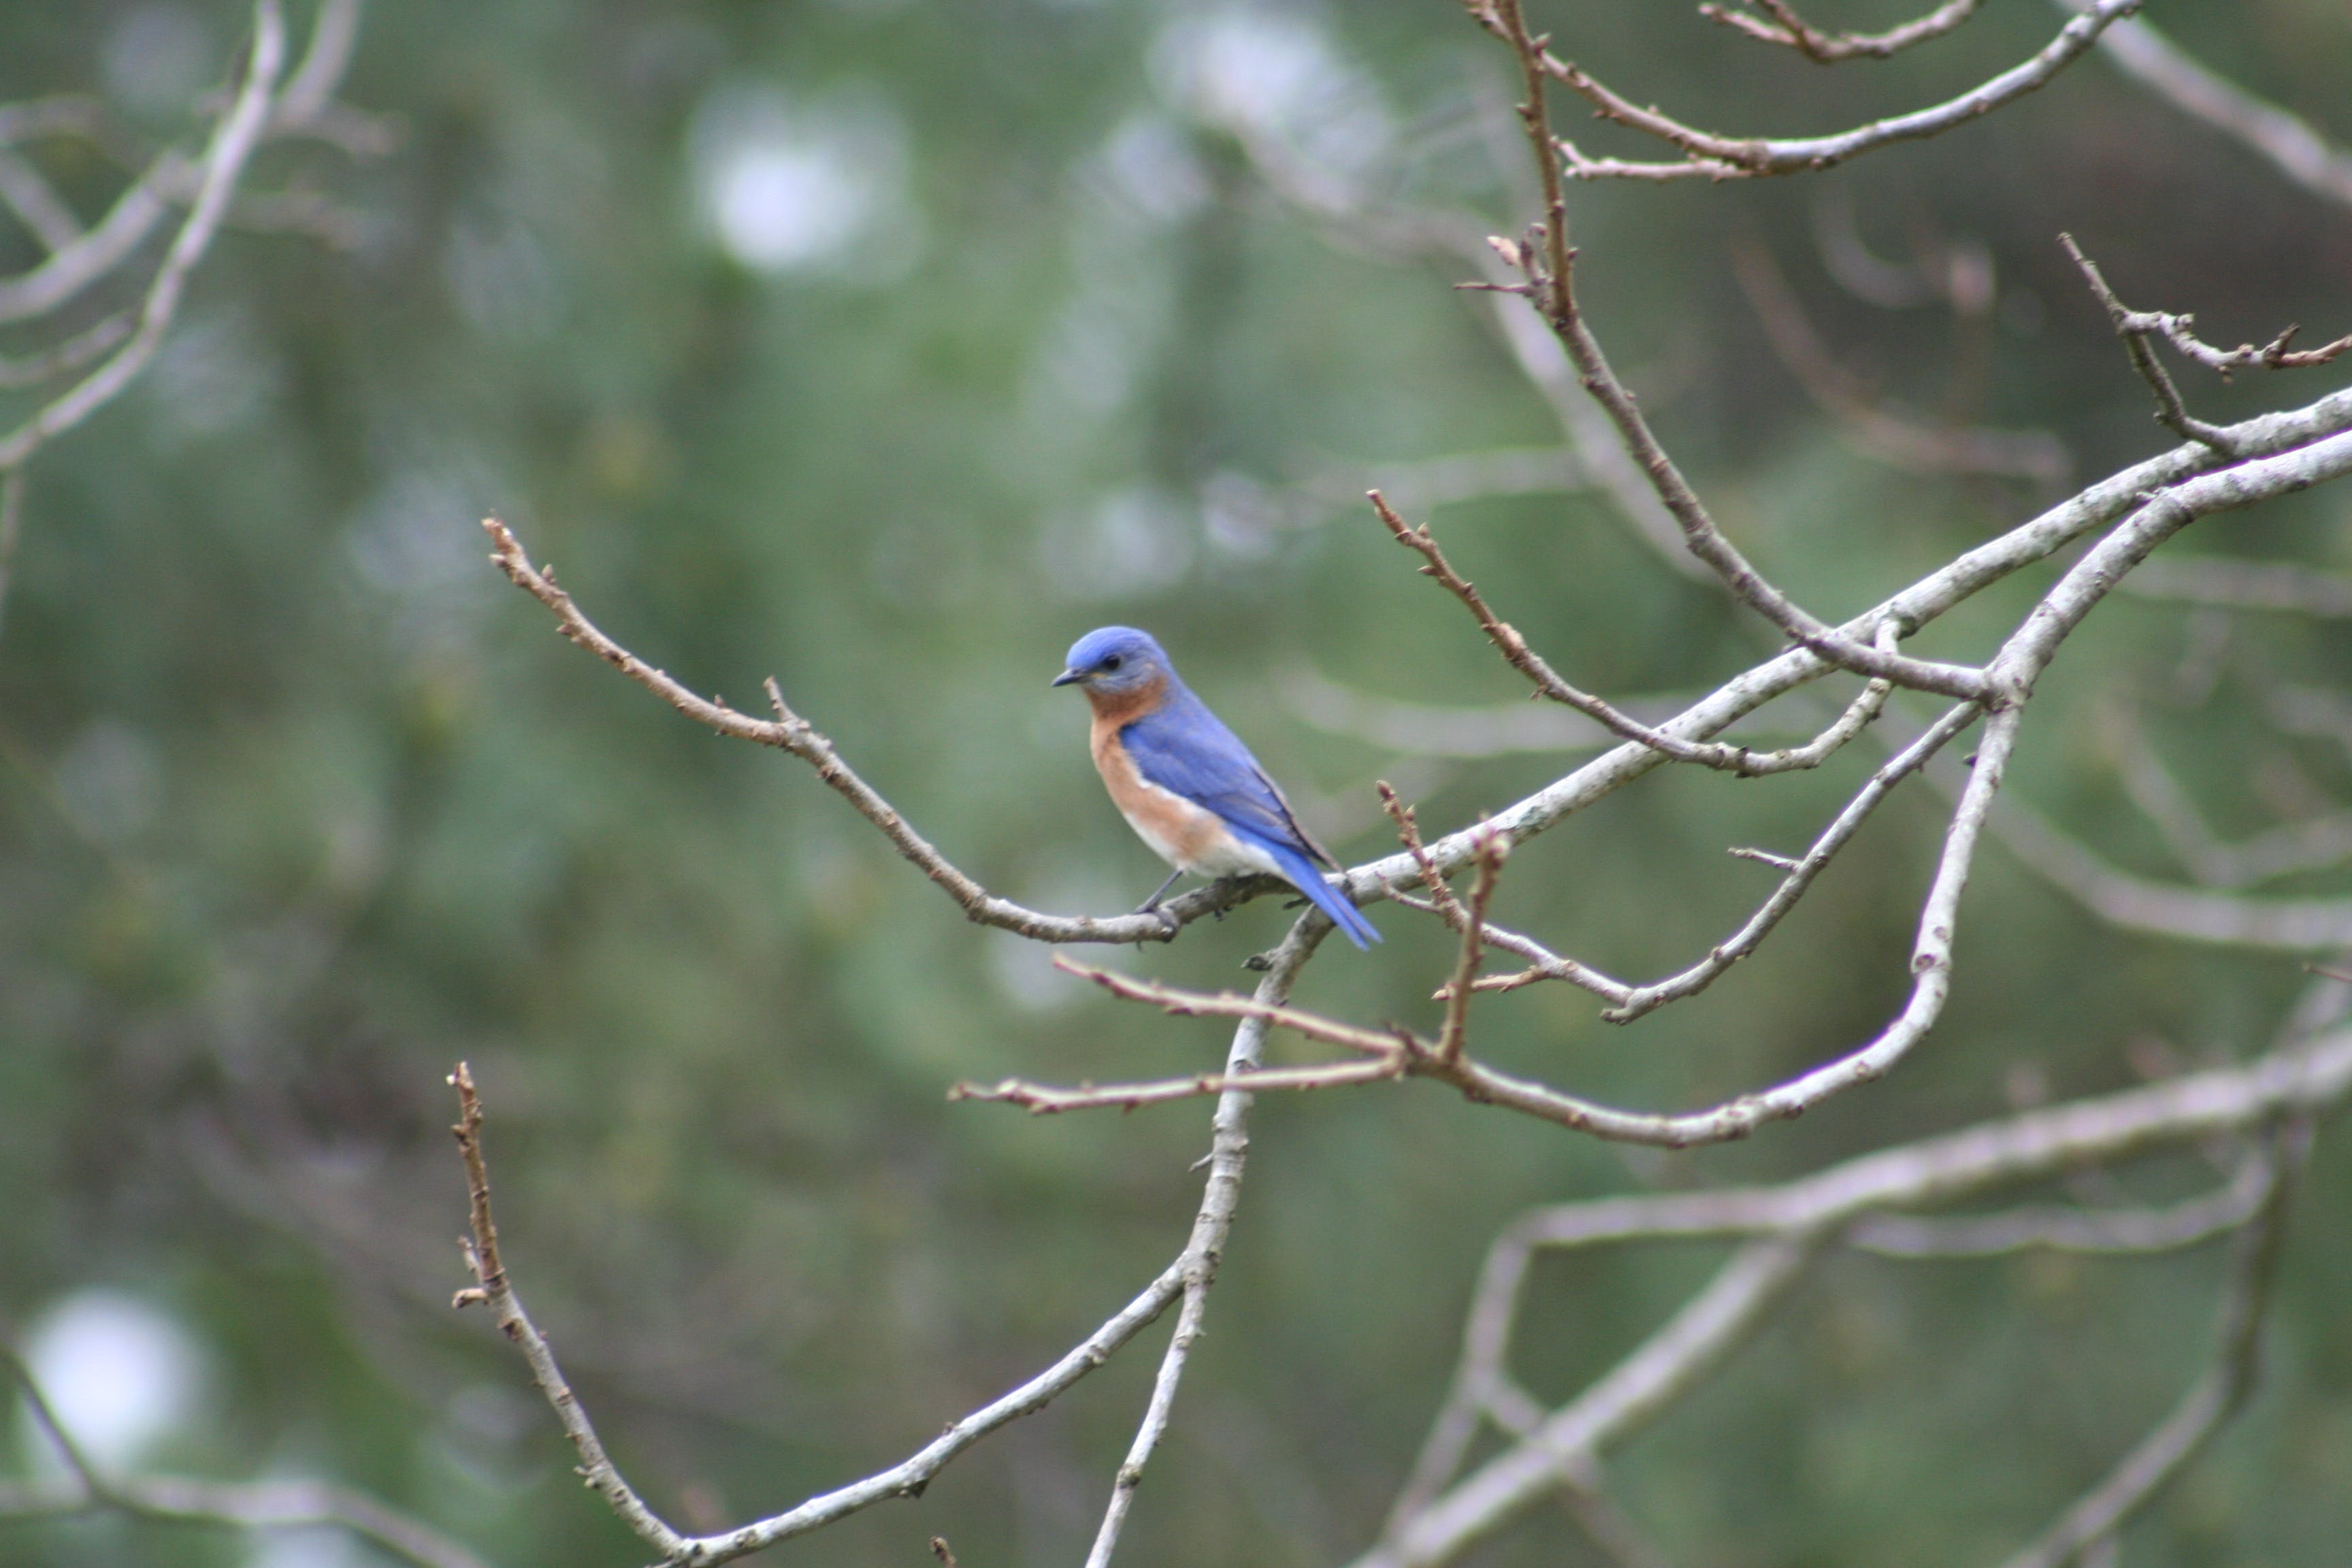 Free stock photo of Eastern Bluebird